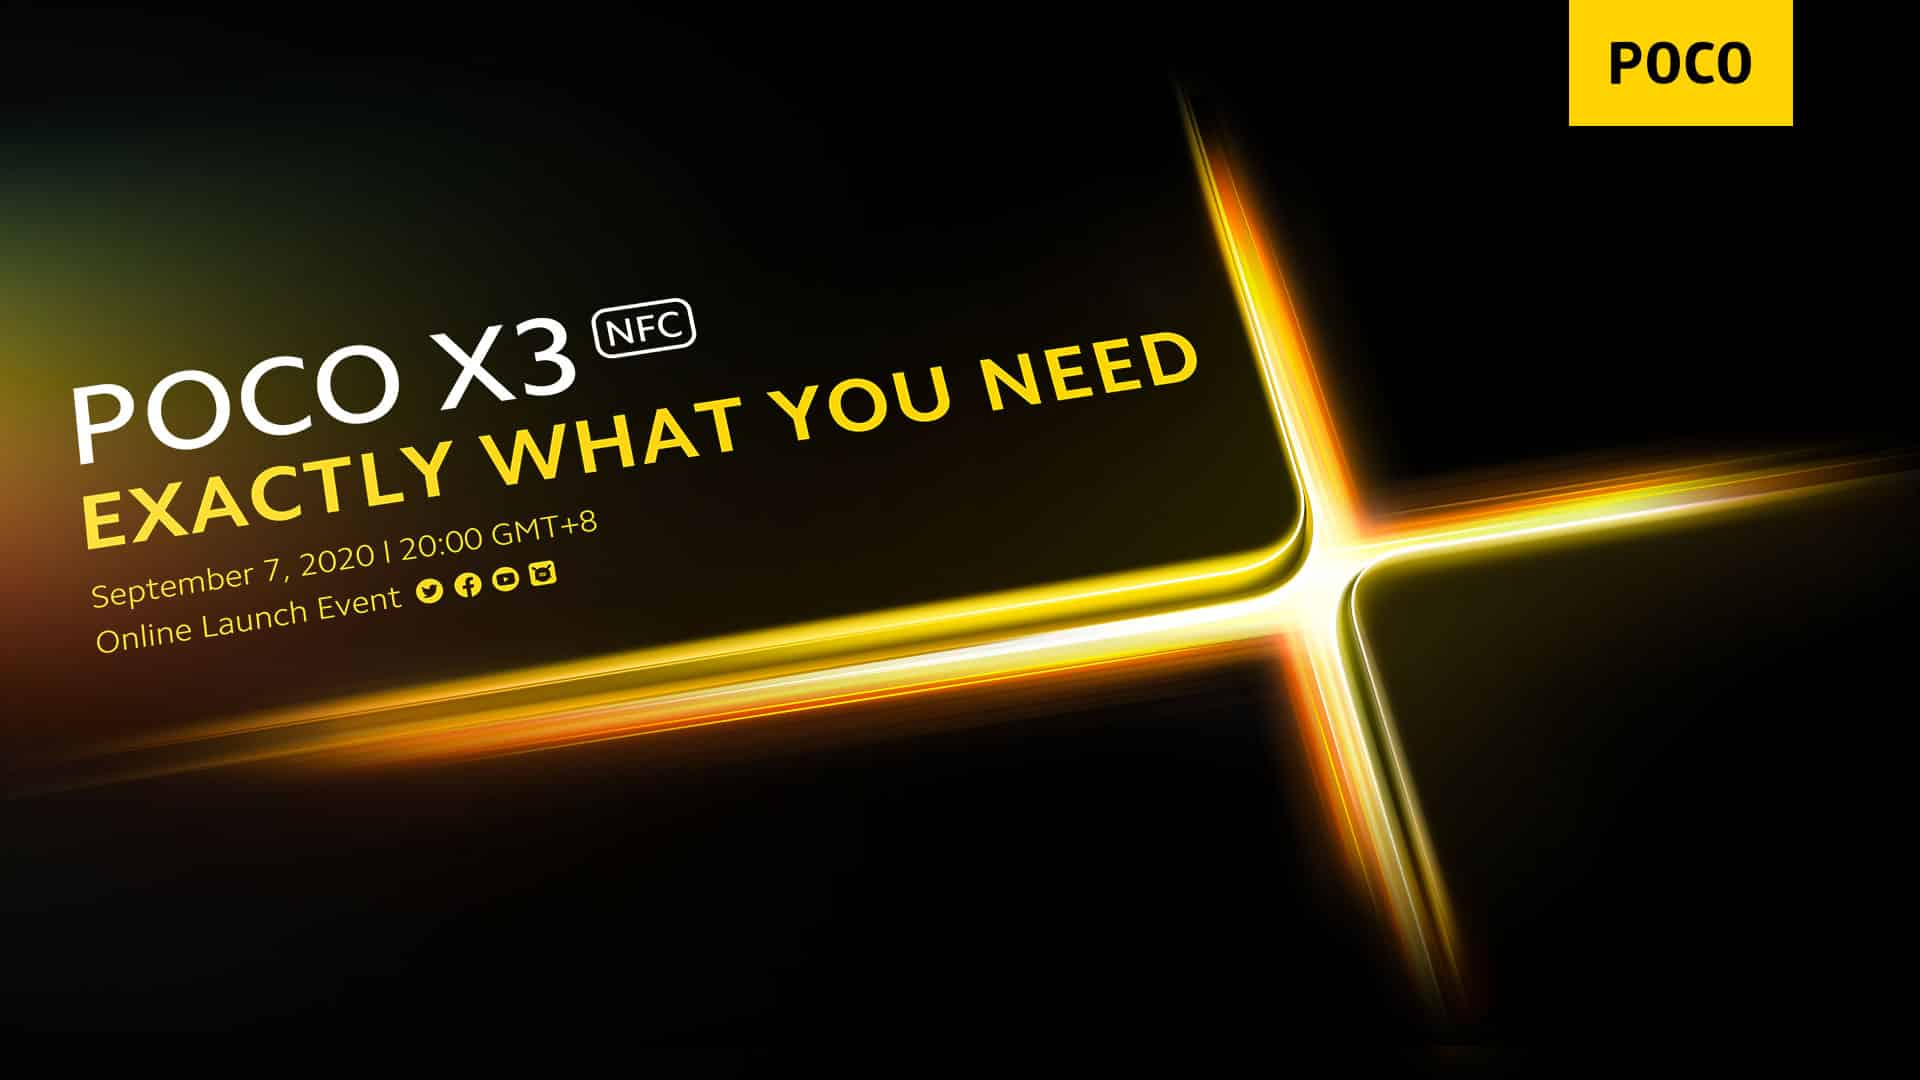 Qualcomm Snapdragon 732G SoC Announced to Debut With a Poco Phone